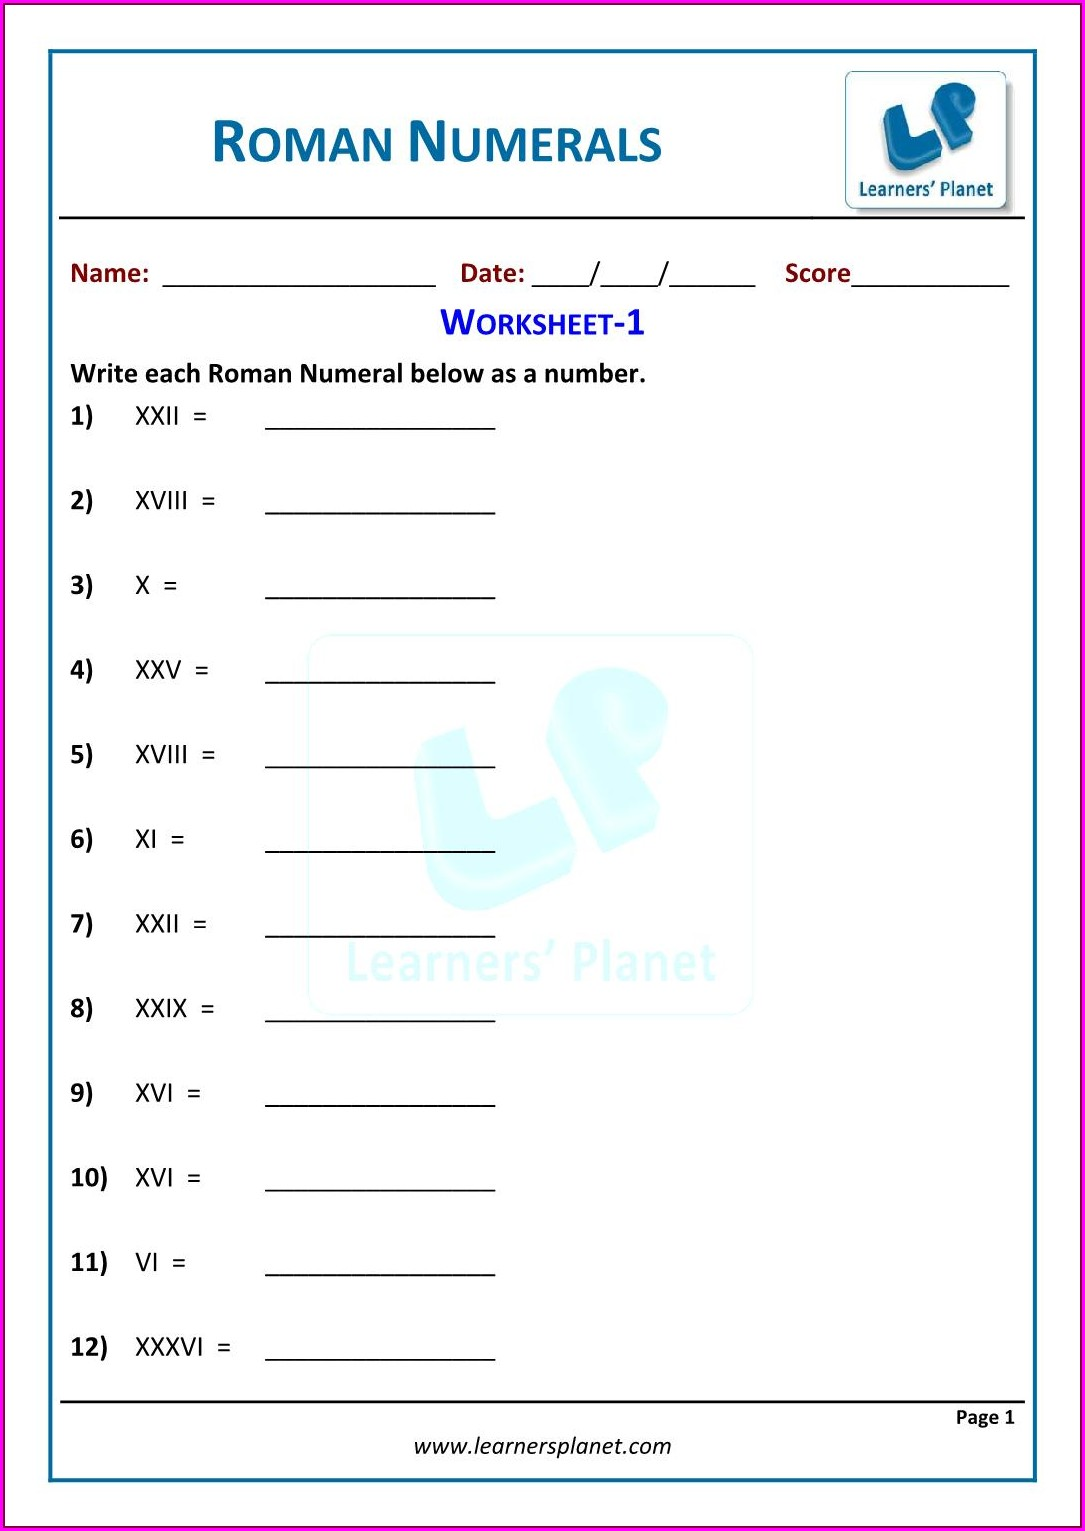 Roman Numerals Worksheet For Grade 2